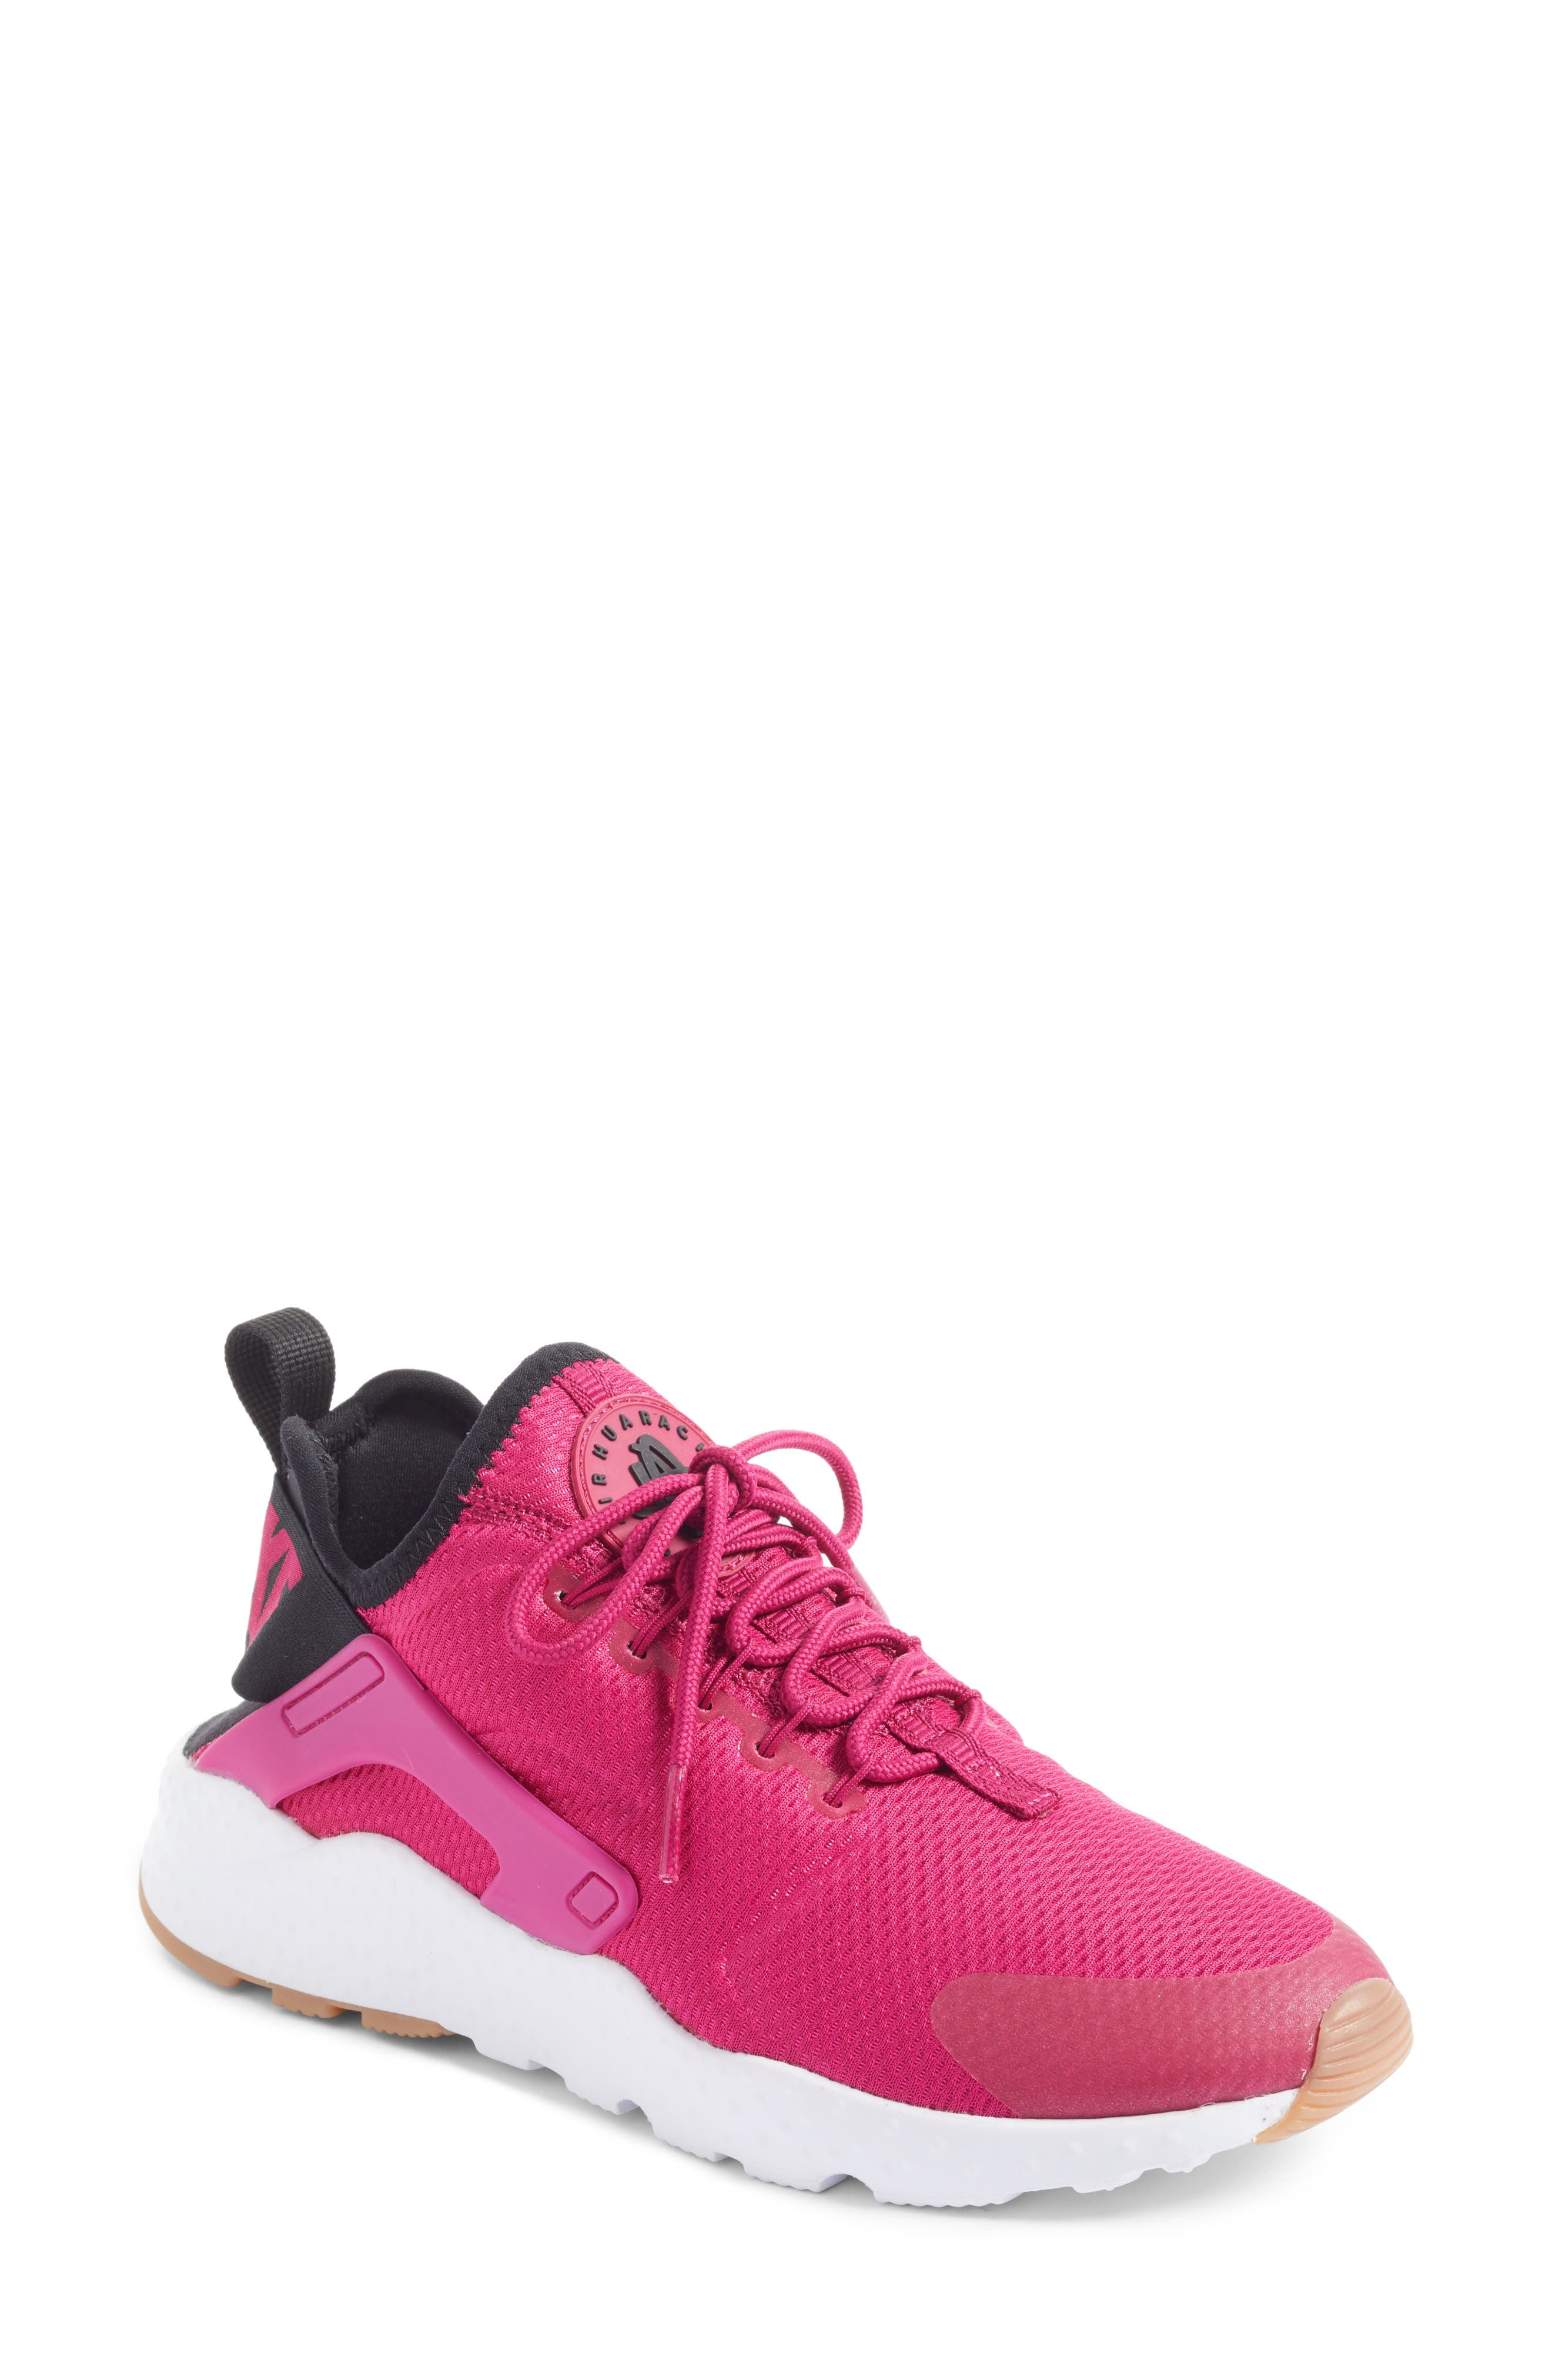 Main Image - Nike Air Huarache Sneaker (Women)